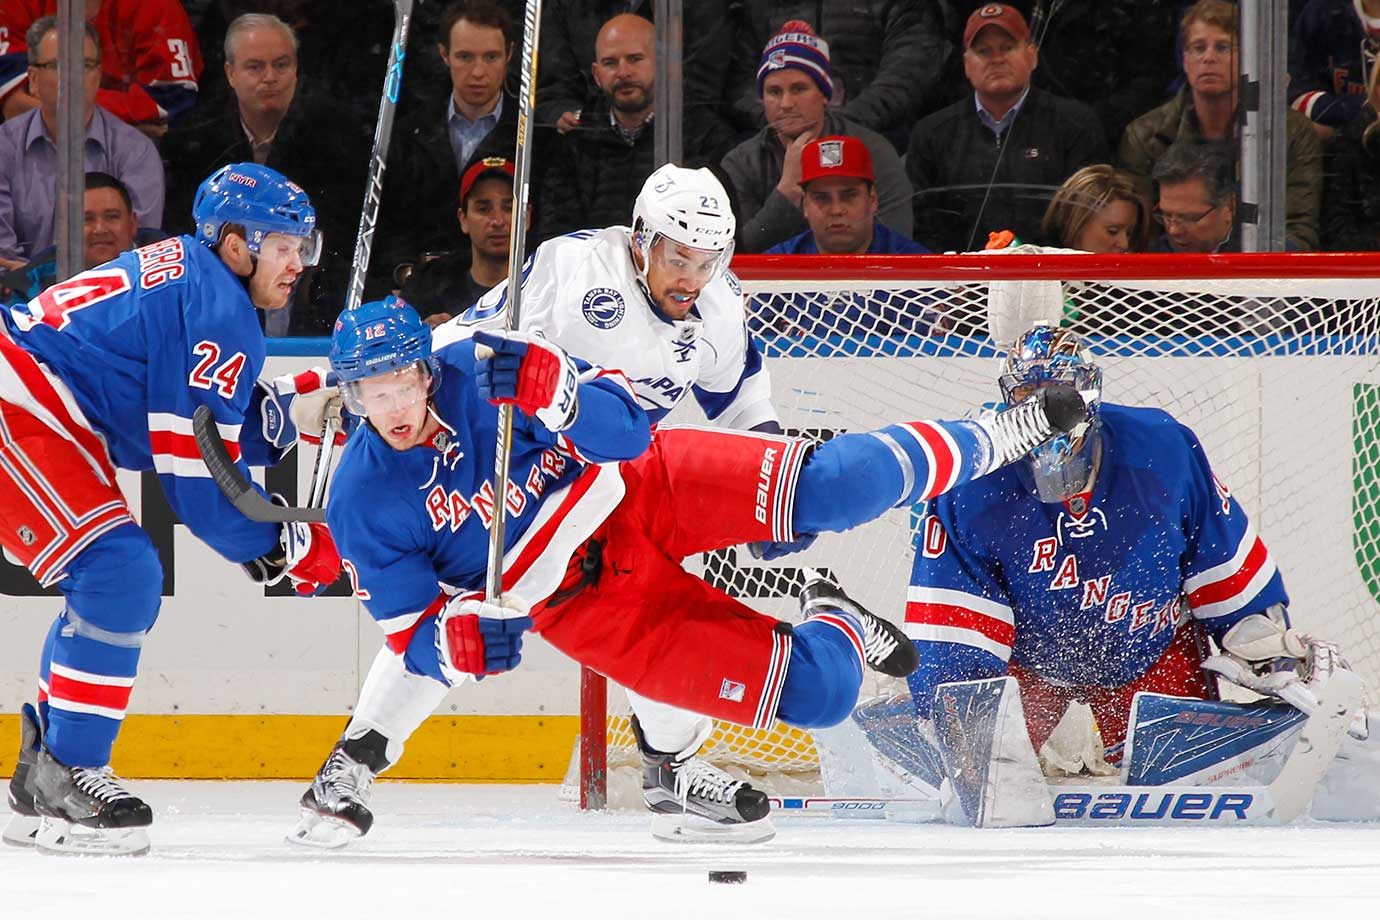 Eric Staal of the New York Rangers gets airborne after being tripped by J.T. Brown of the Tampa Bay Lightning.